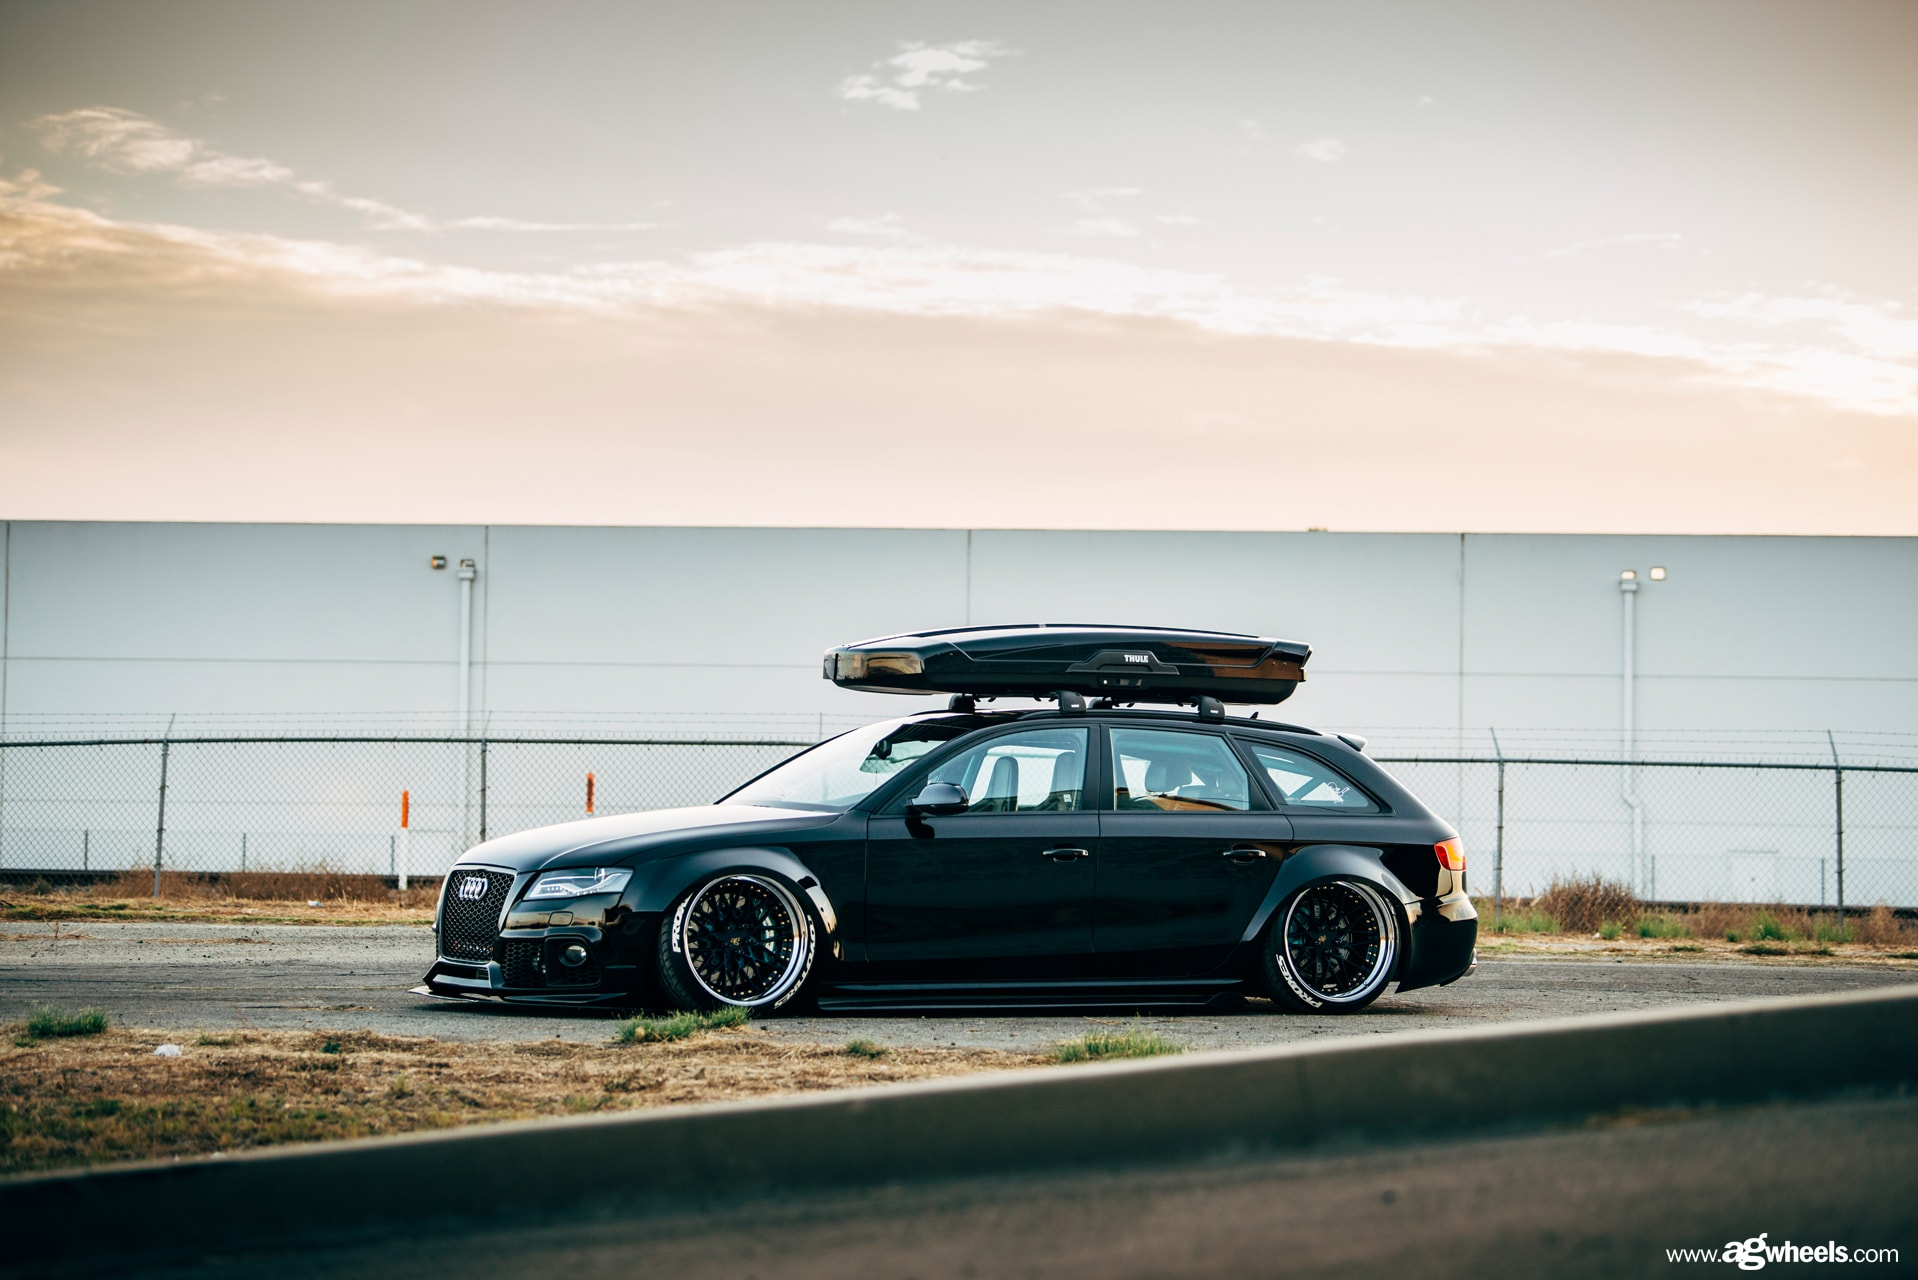 audi a4 avant wagon ag wheels agwheels avantgardewheels avant garde wheel rim rims tire tires stance stancenation widebody iacrophobia thule toyo tires toyotires proxes sr10 abyss blue face chrome lip gold hardware concave three piece 3piece